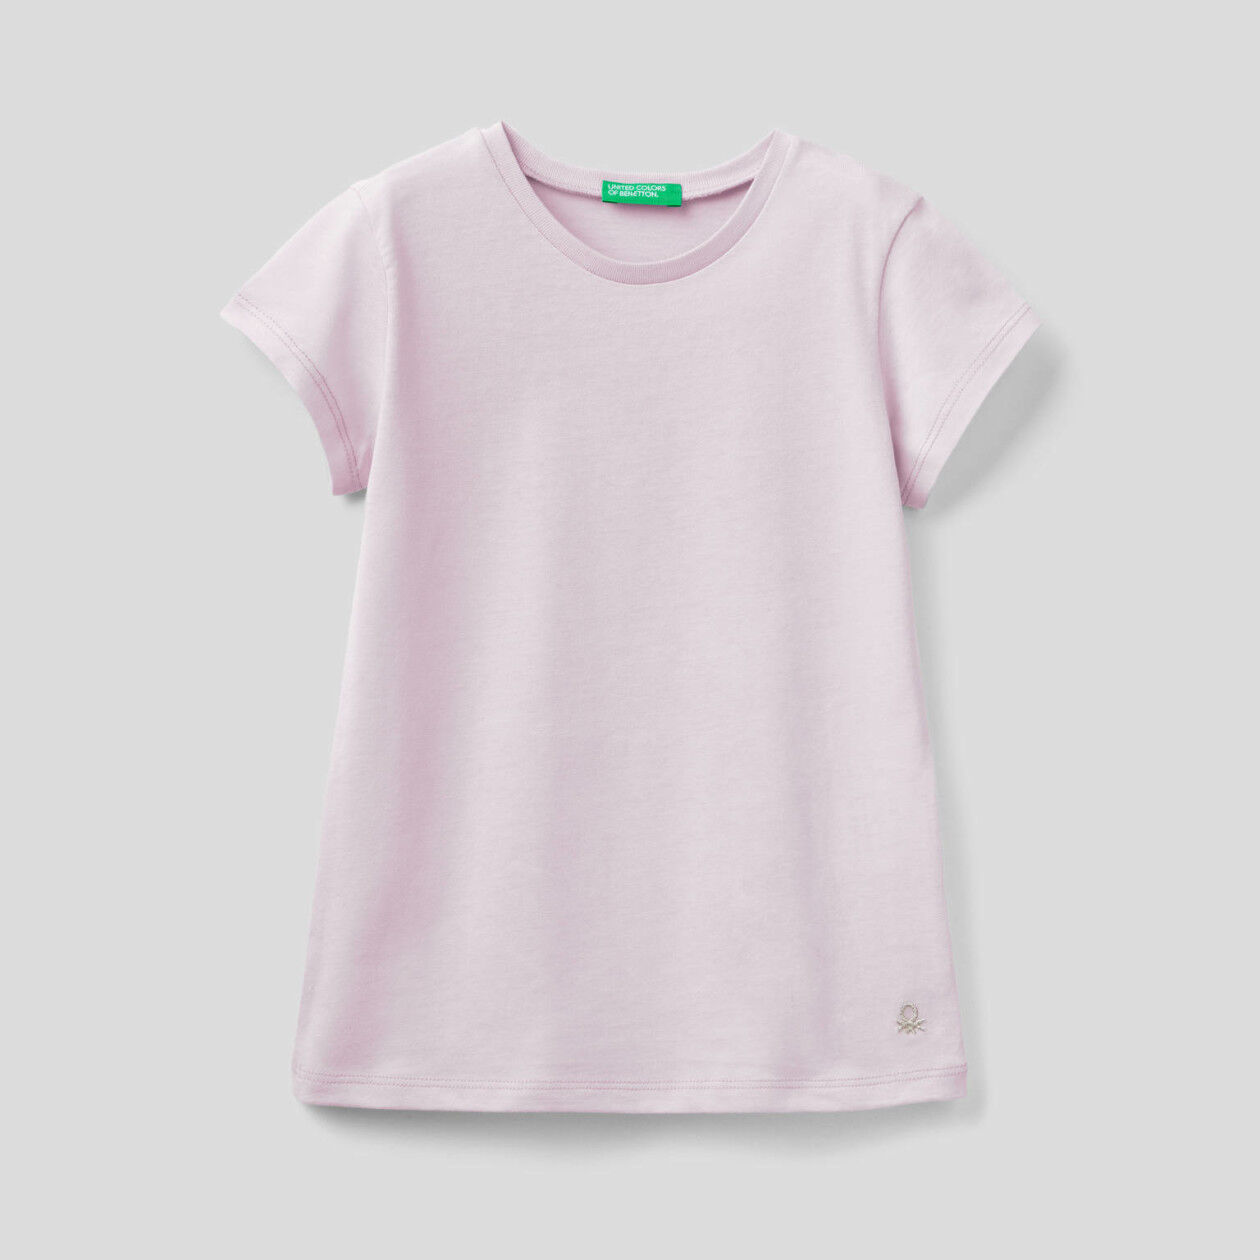 T-shirt in pure organic cotton